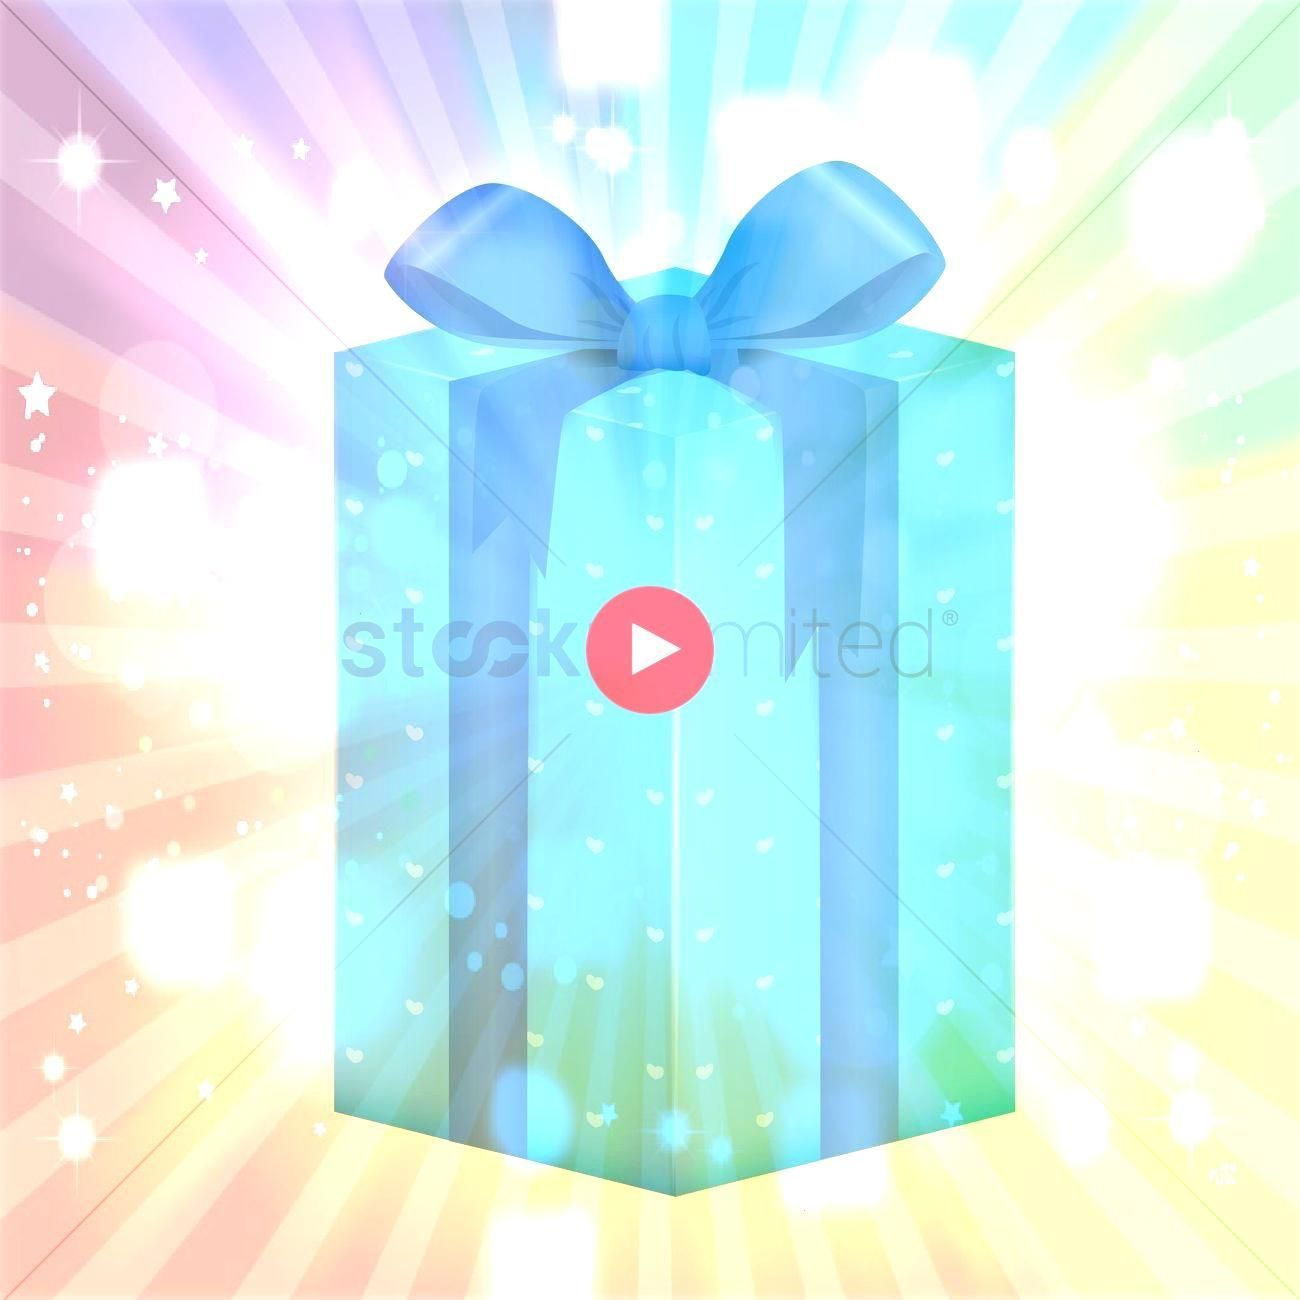 stock vector Gift box stock vector  Abstract Blue Geometrical Background  Futuristic technology style Neon Sign  Futuristic Technology HUD Element  Elegant Abstract backg...